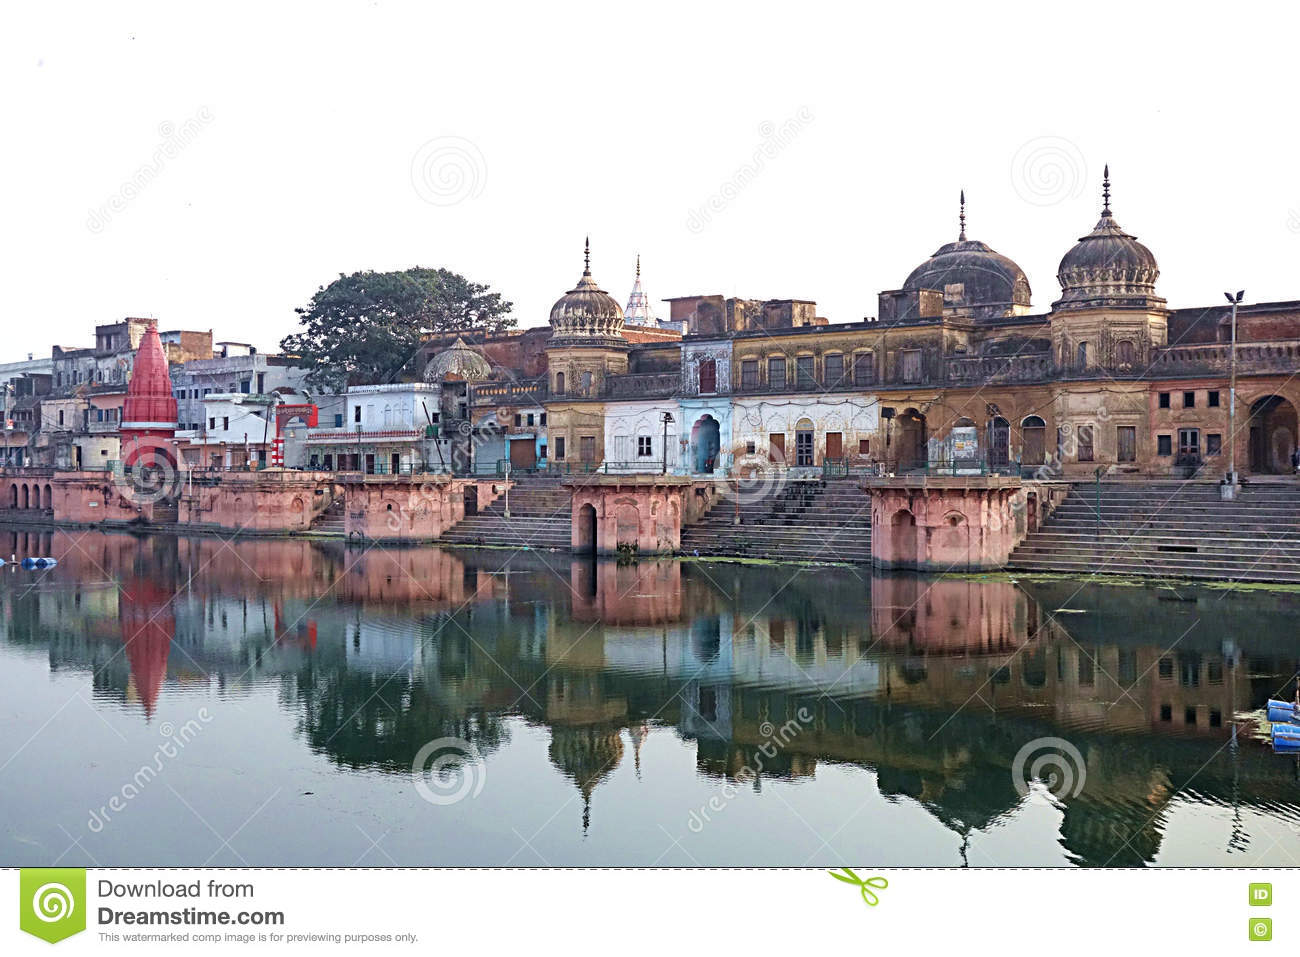 Ancient Temples of India on Water